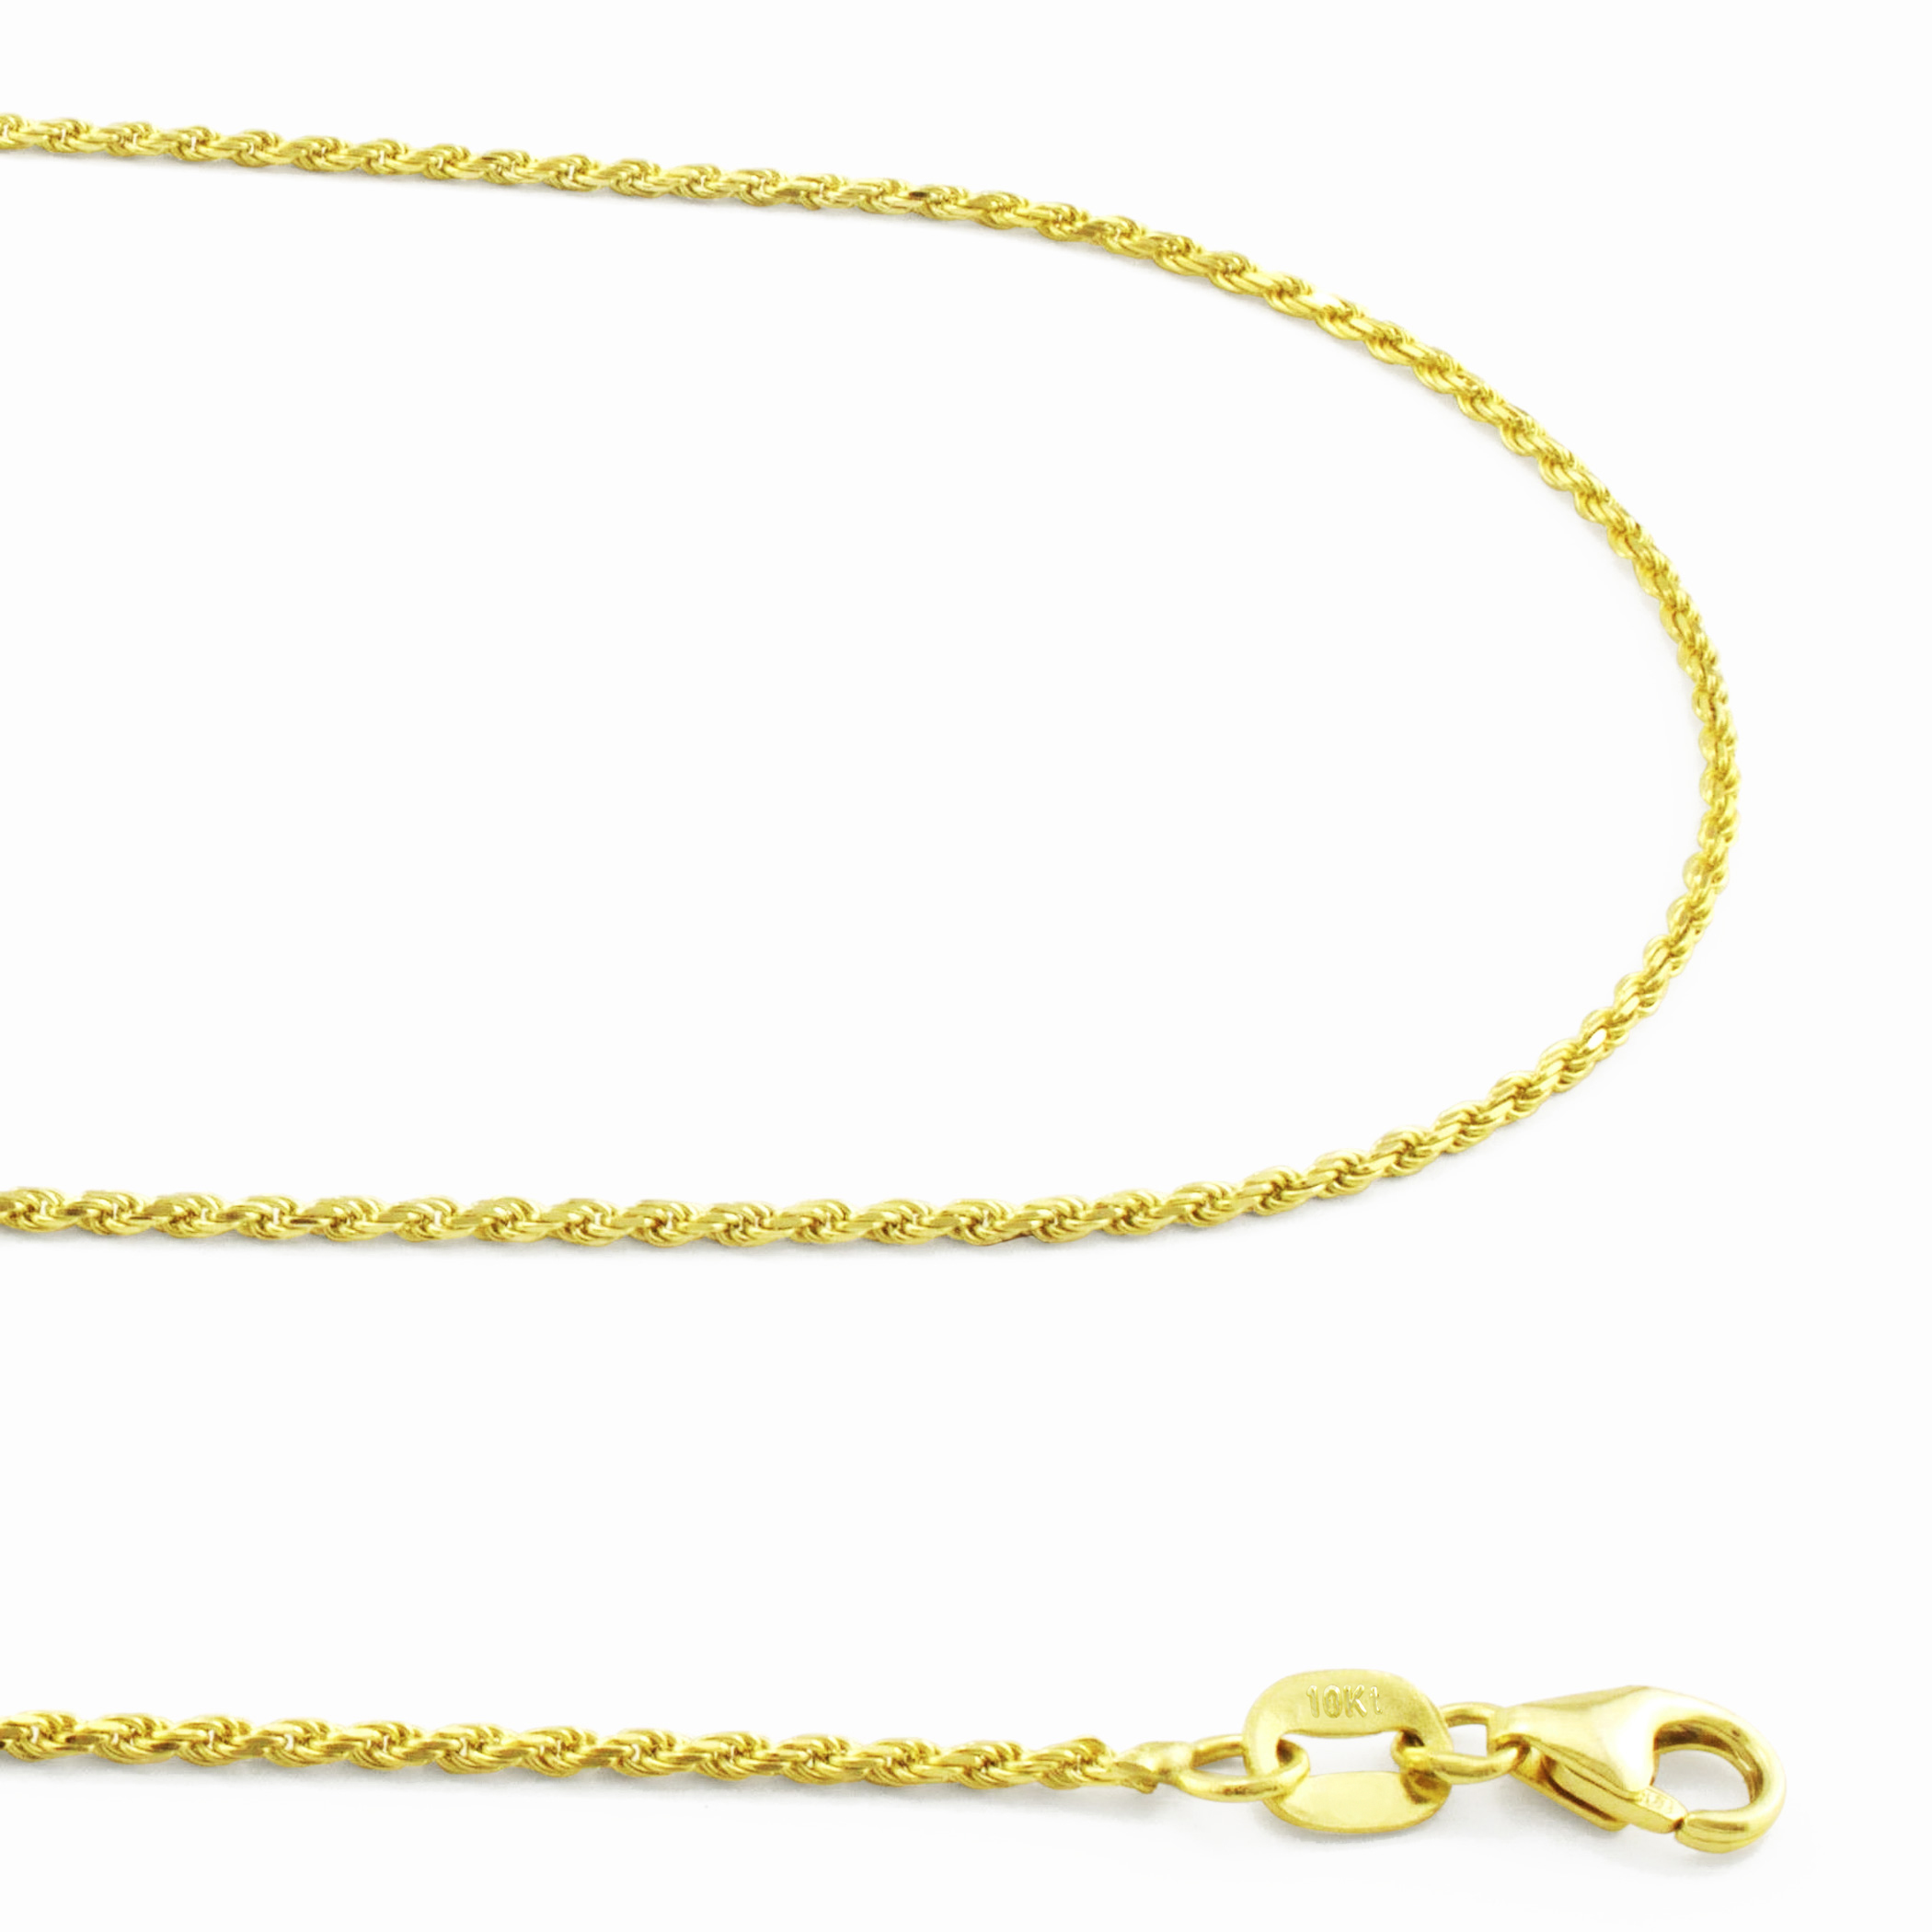 14k Yellow Gold 2.0mm Diamond-Cut Rope Chain Necklace Bracelet Anklet 7-36